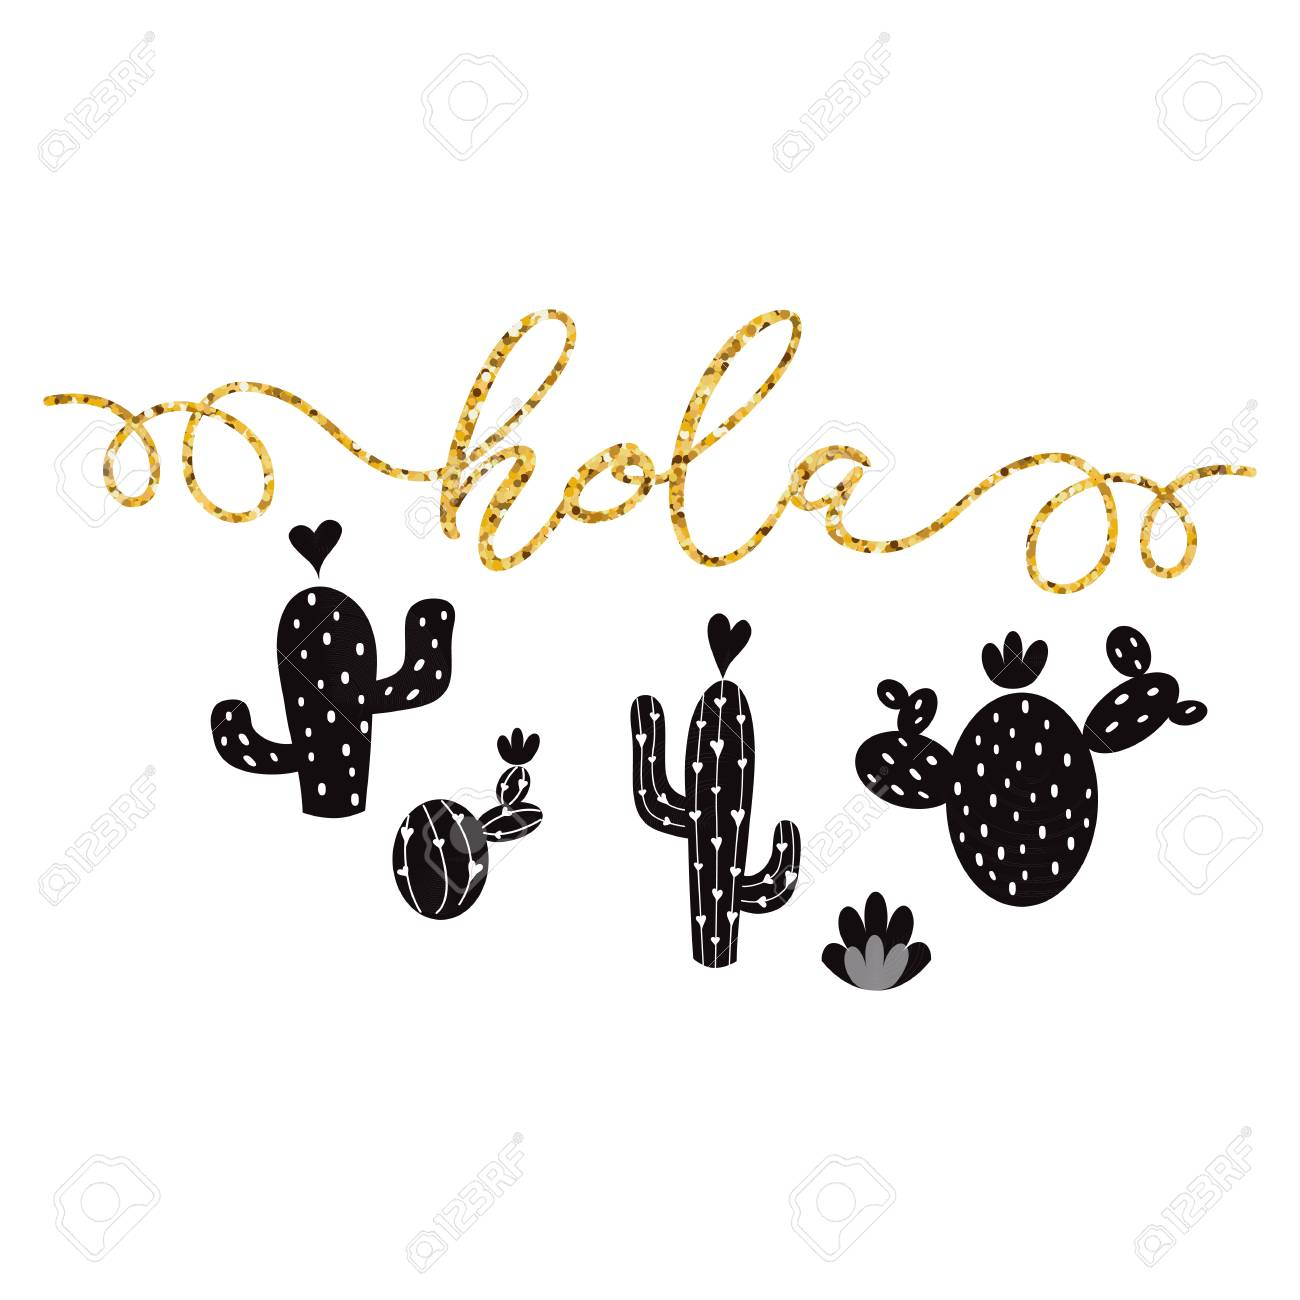 graphic regarding Cactus Printable named Gold words Hi there inside of Spanish Hand drawn lovable black cactus Printable..